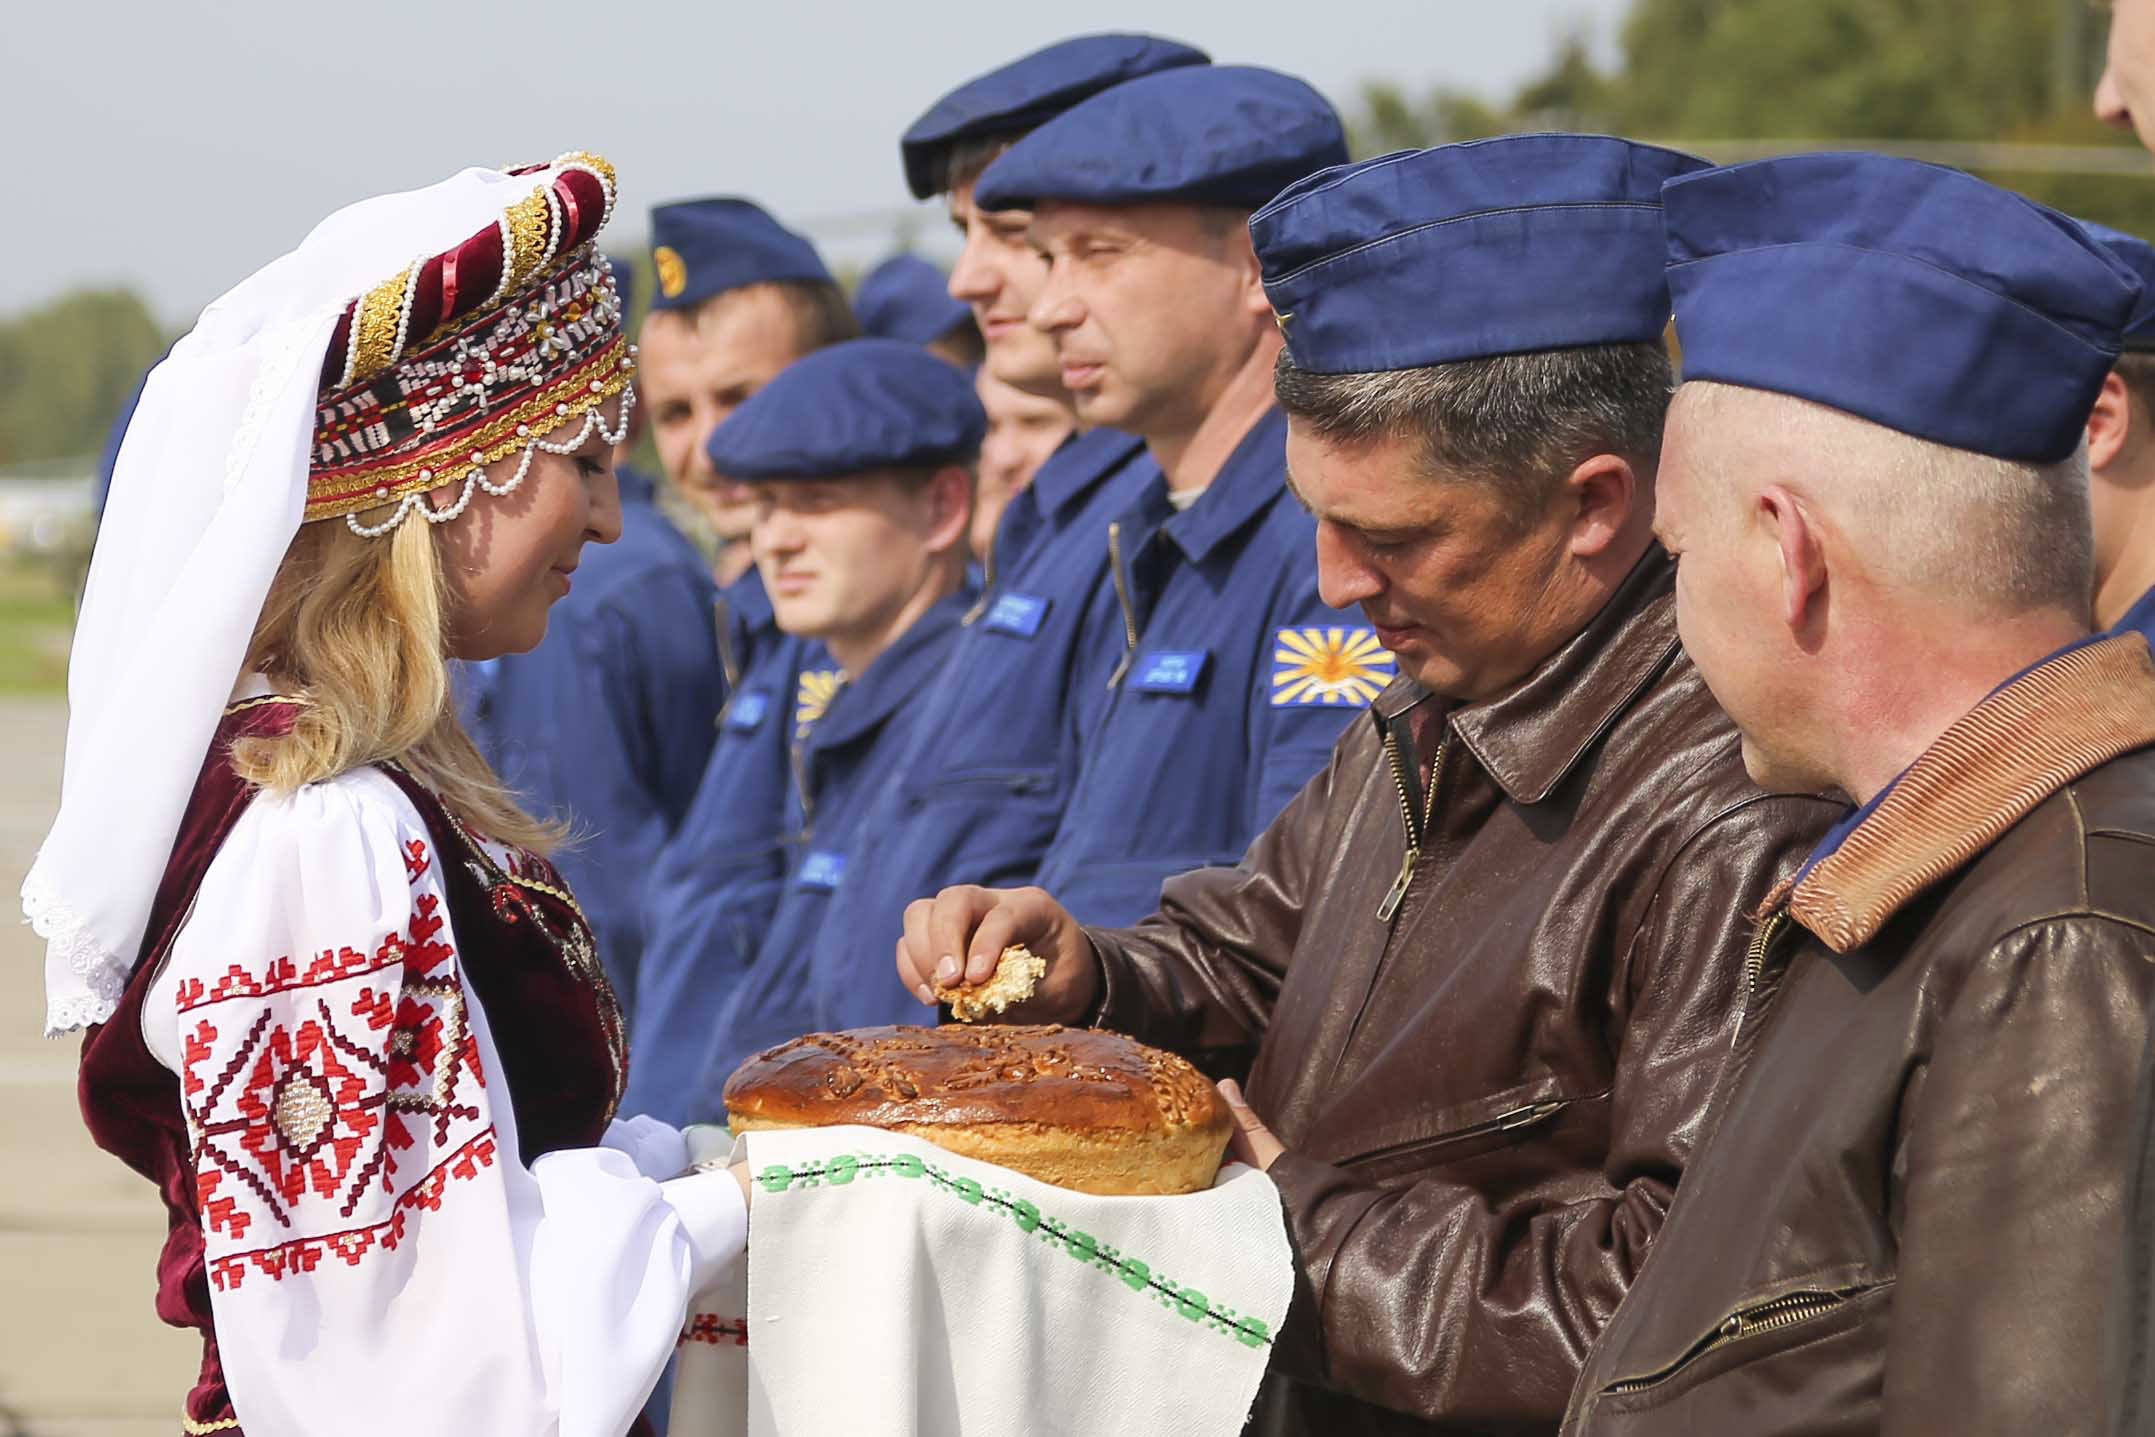 Russian military pilots are presented with bread and salt as they arrive at an air base at an undisclosed location in Belarus on Sept. 12, 2017. Russia and Belarus are holding a massive war game, Zapad 2017, which states Sept. 14, 2017, near the borders of Poland, Estonia, Latvia and Lithuania. (Vayar Military Agency photo via AP)